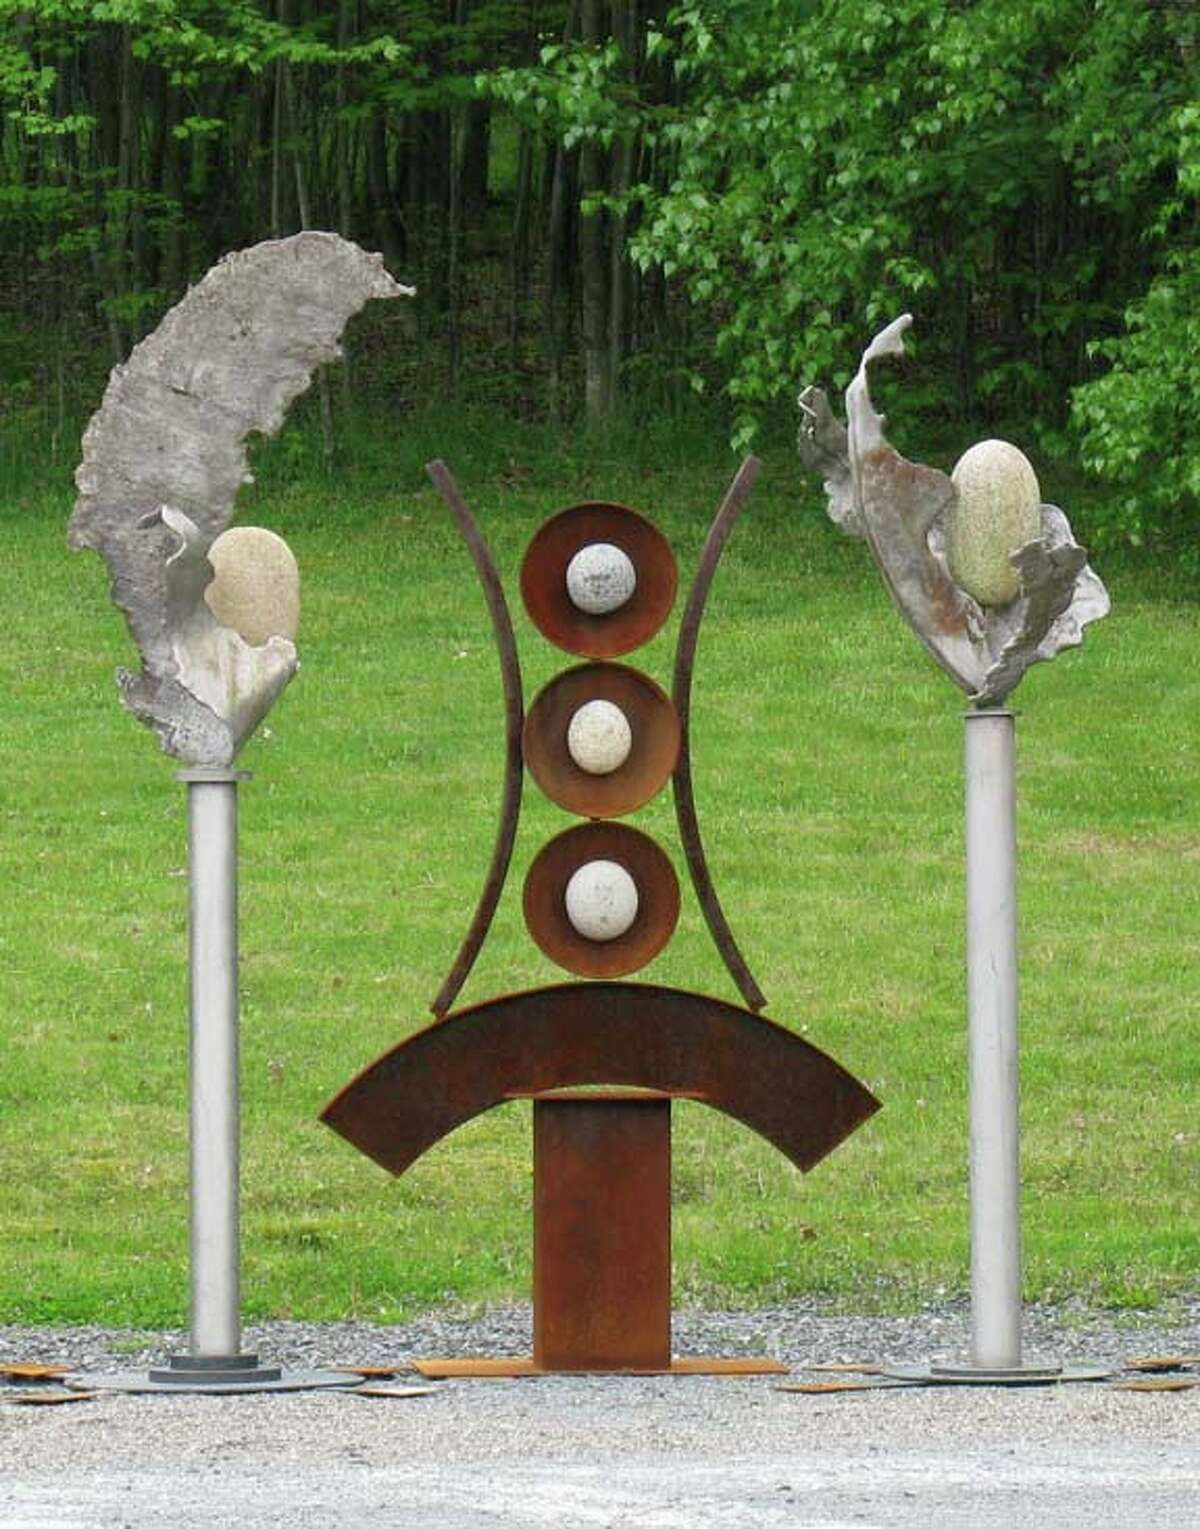 Artifacts Stainless and soft steel, granite